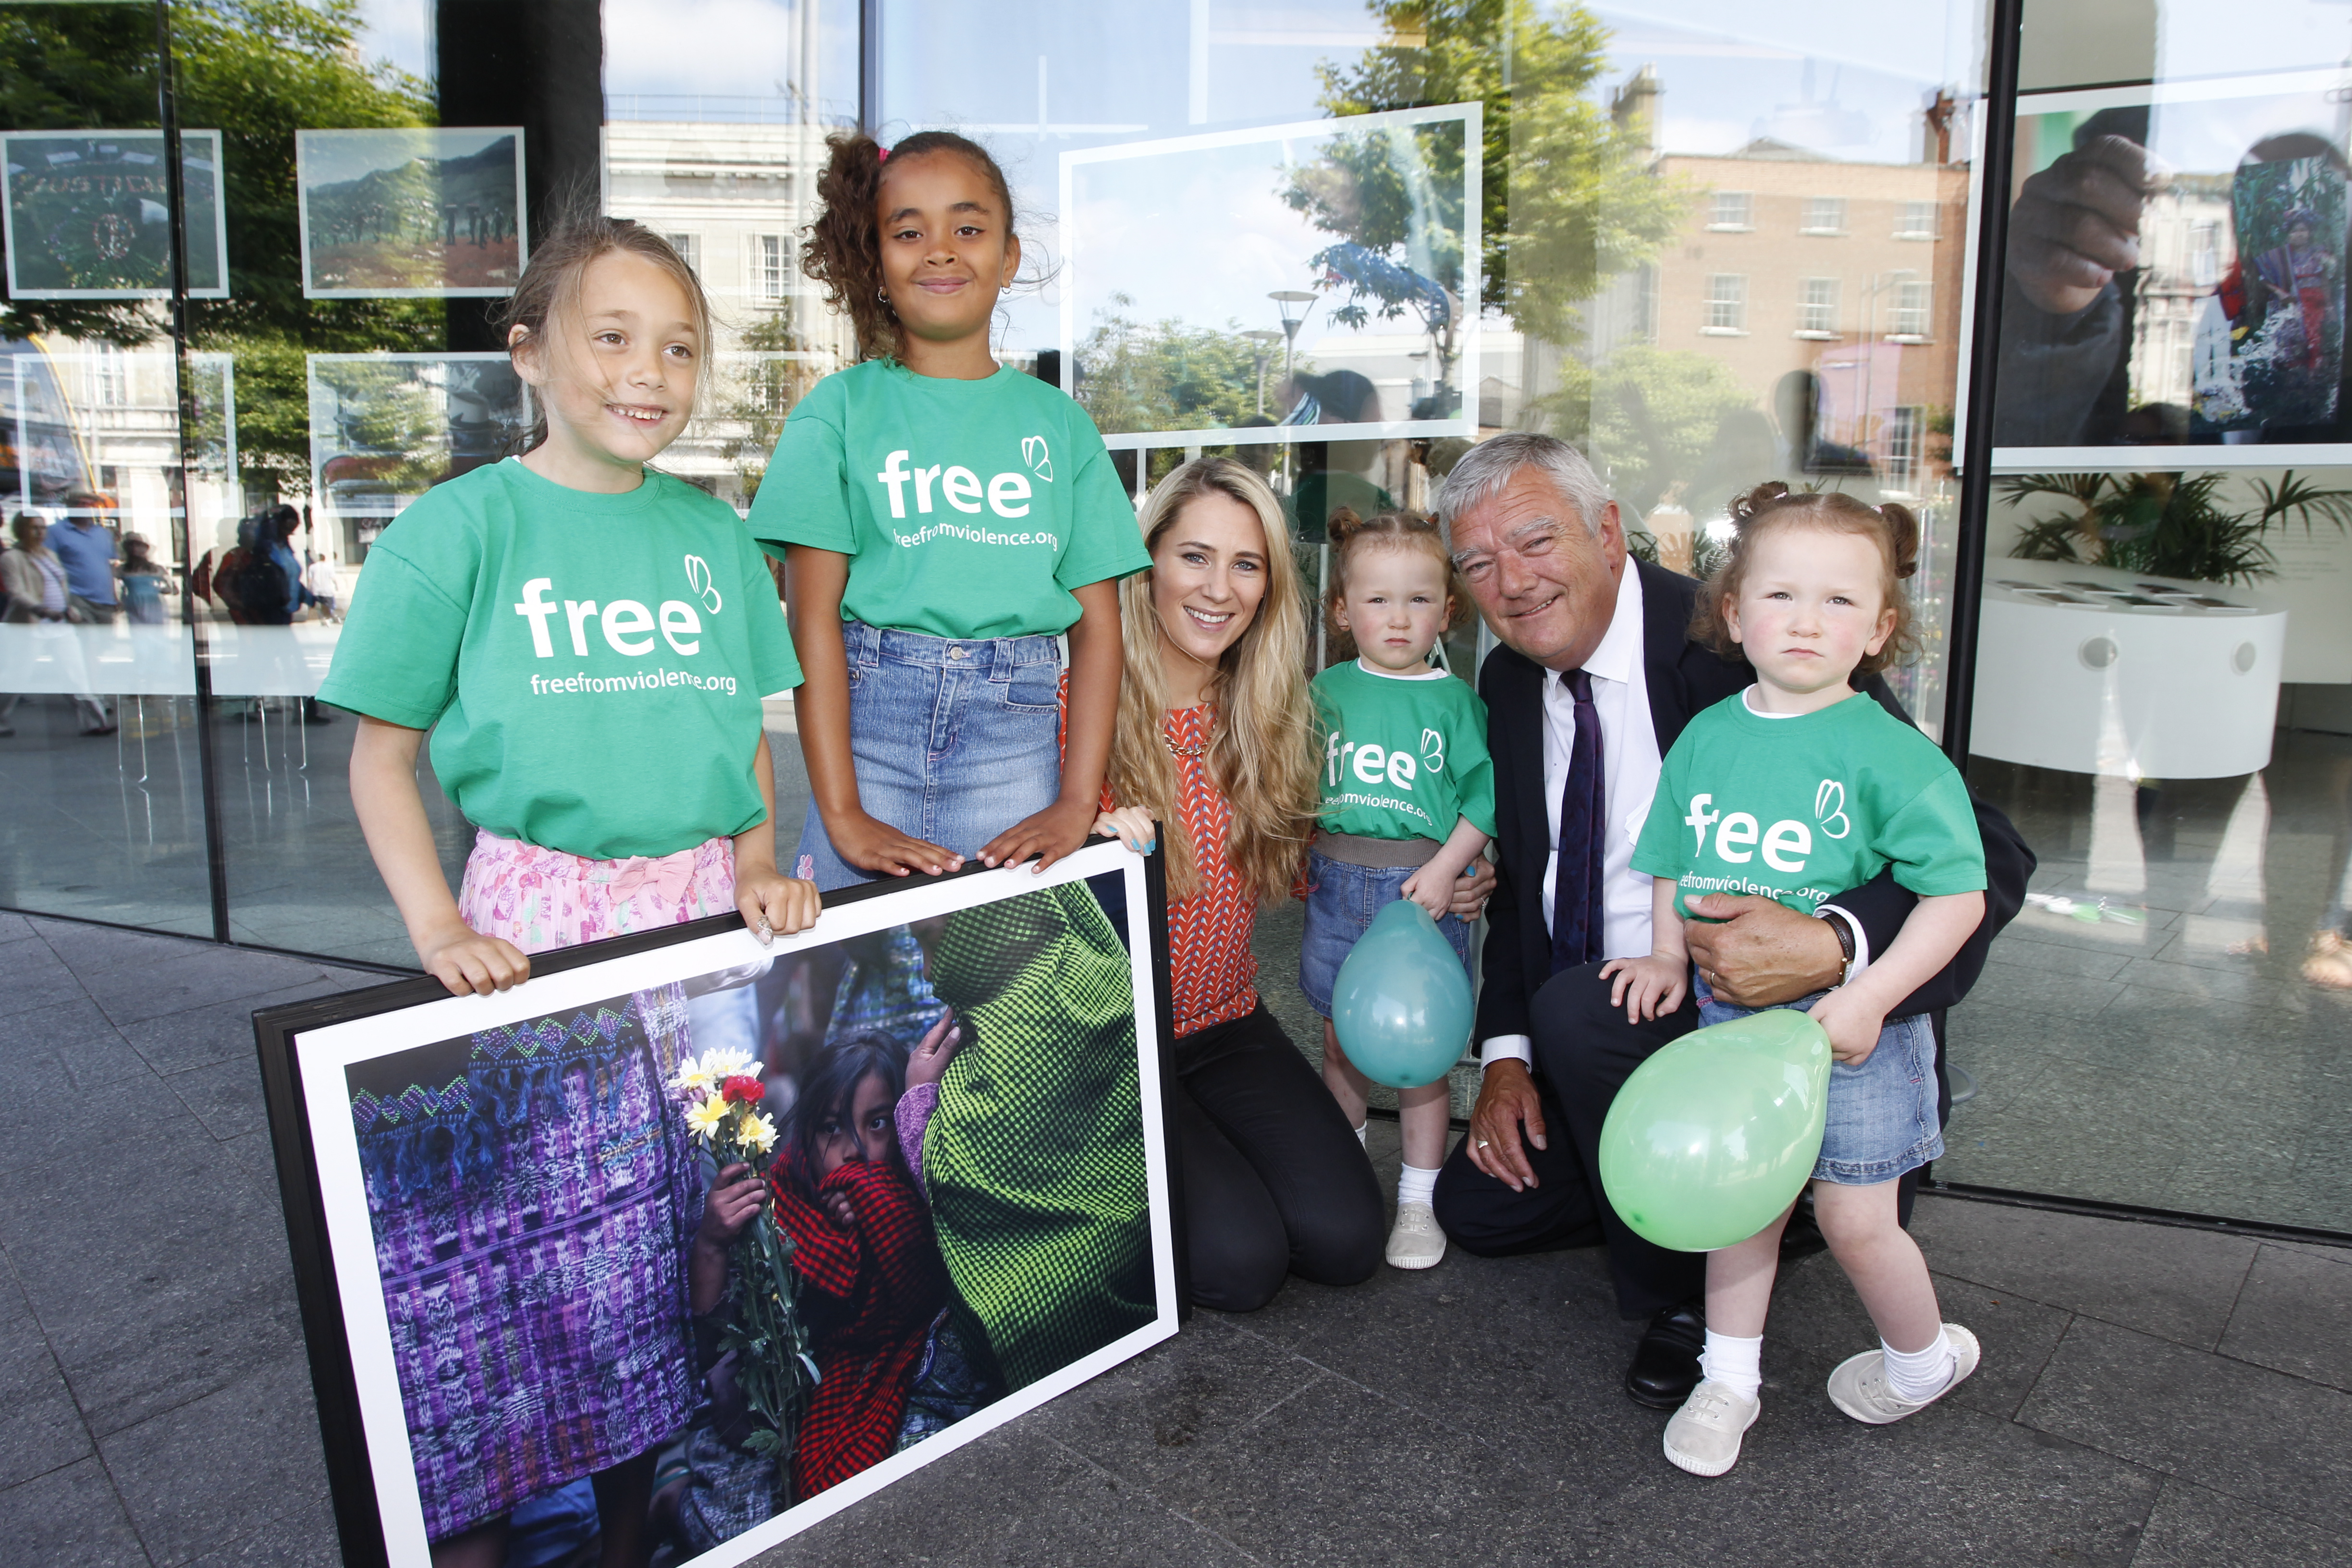 Mick Kiely, CEO of Childfund Ireland, with his twin granddaughers (about 4 years old) and a couple of older girls.